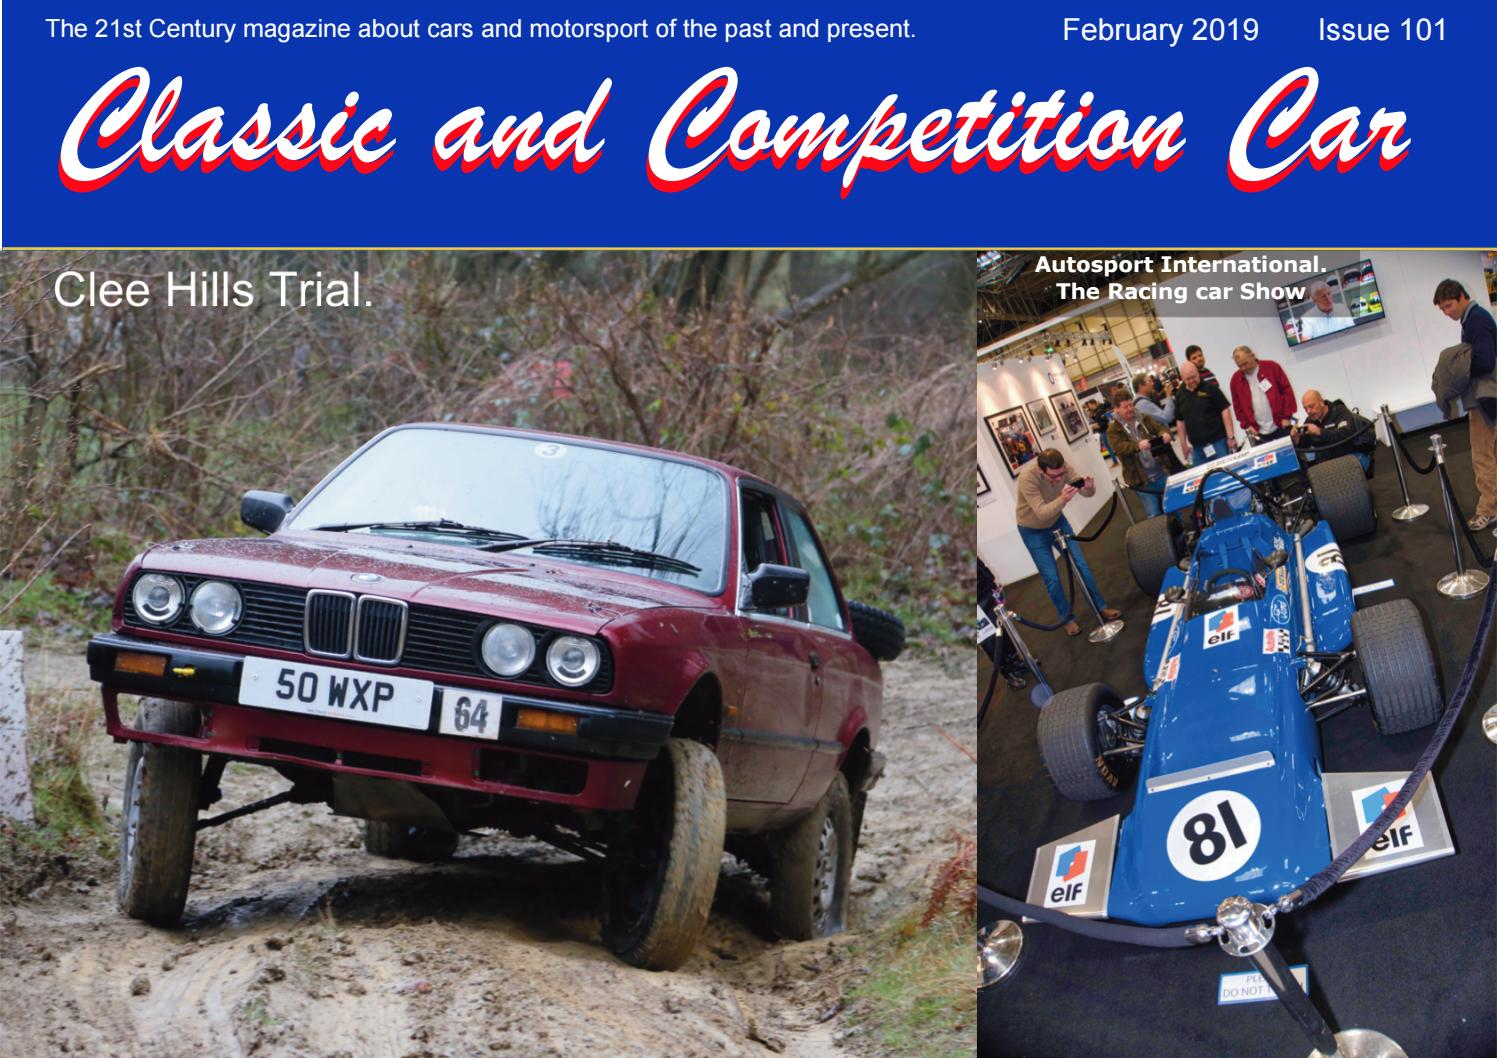 Classic and Competition Car 101 February 2019 by Simon